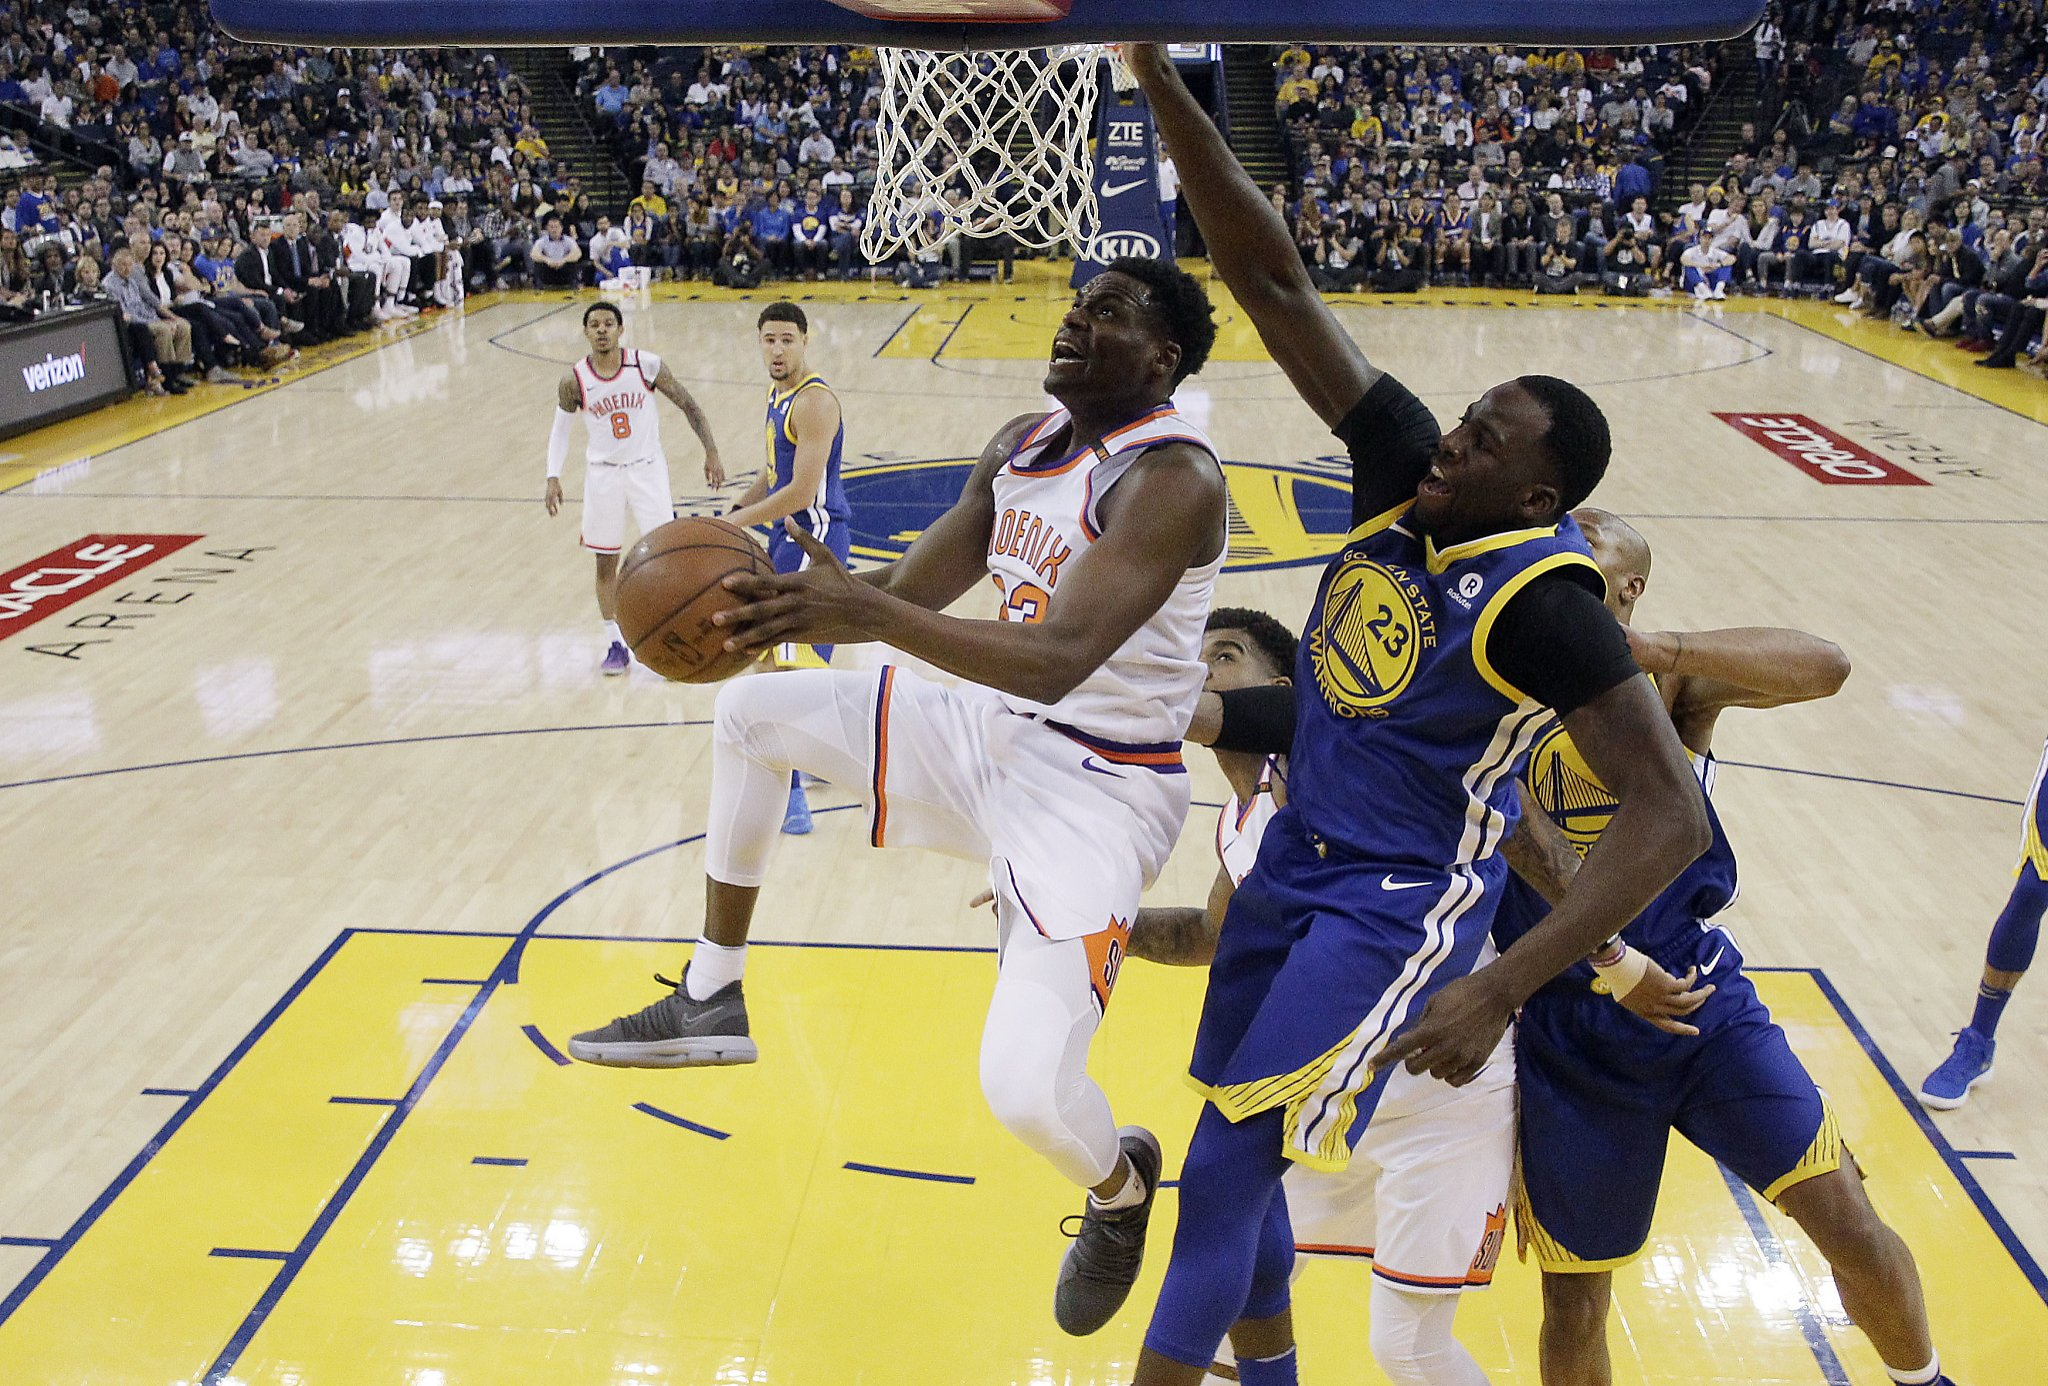 Warriors Vs Suns Facebook: Warriors Game Day: Can Golden State Tighten Up Defense Vs